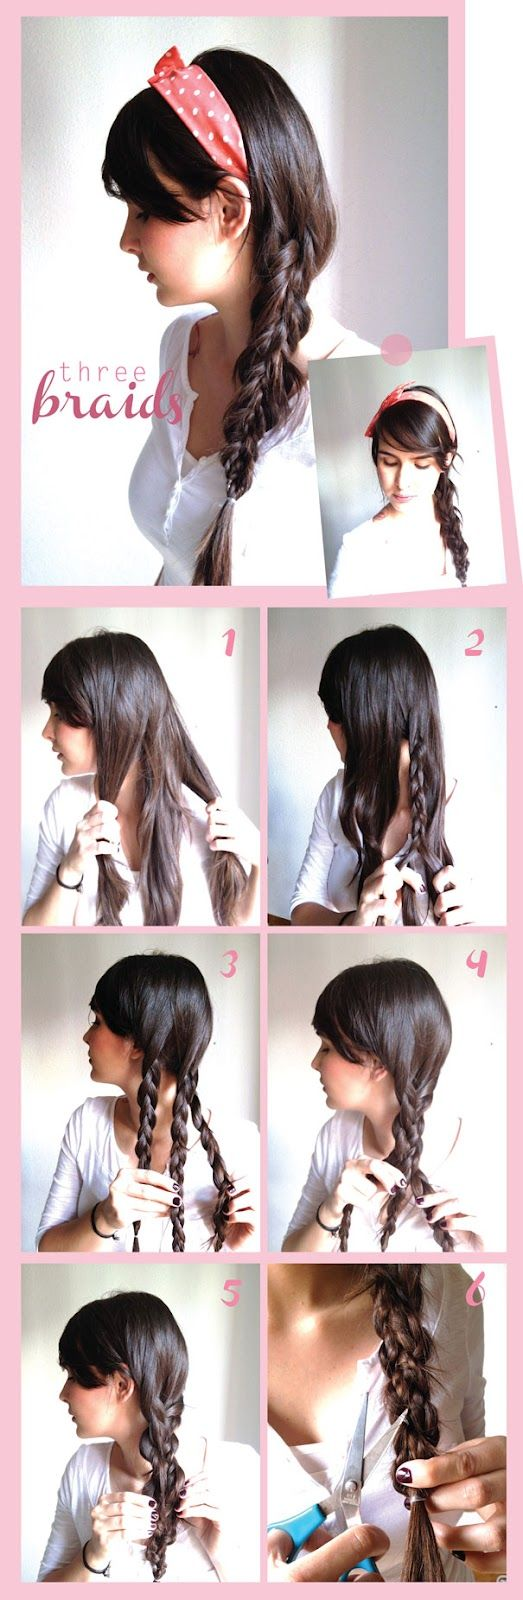 Braids on braids hair pinterest third hair style and makeup